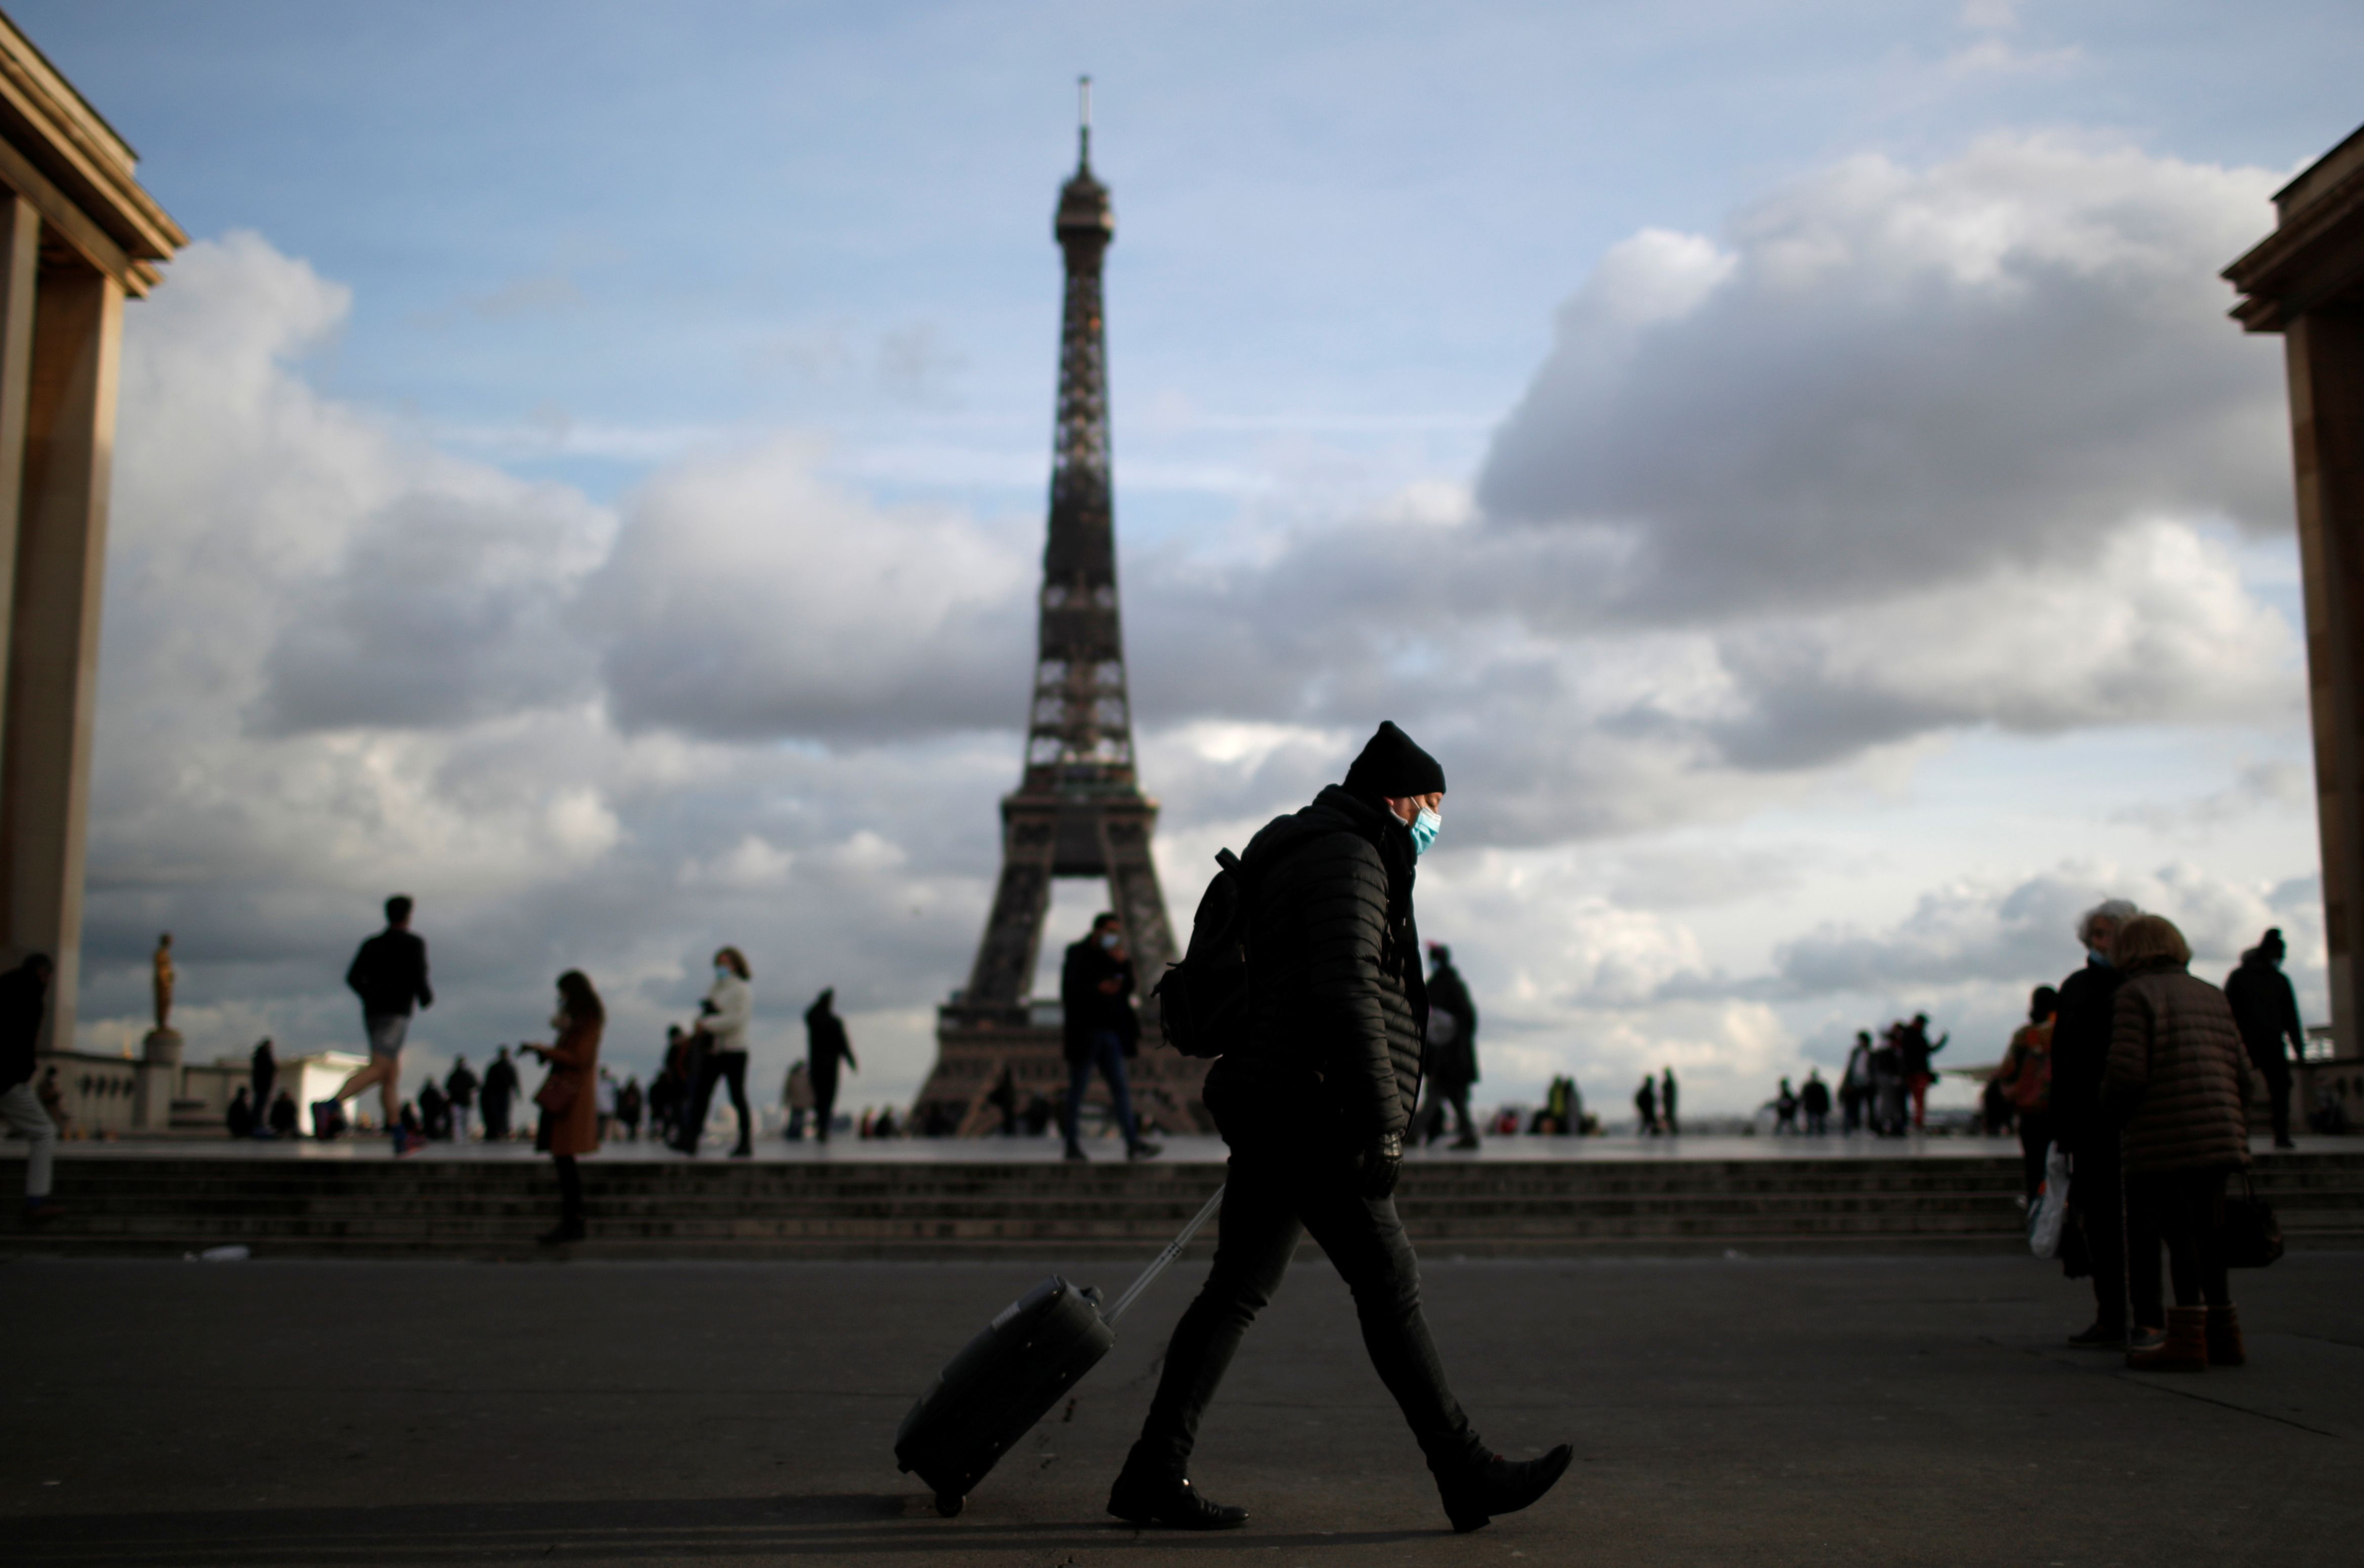 A man wearing a protective face mask walks at Trocadero square near the Eiffel Tower in Paris amid the coronavirus disease (COVID-19) outbreak in France, January 22, 2021. REUTERS/Gonzalo Fuentes